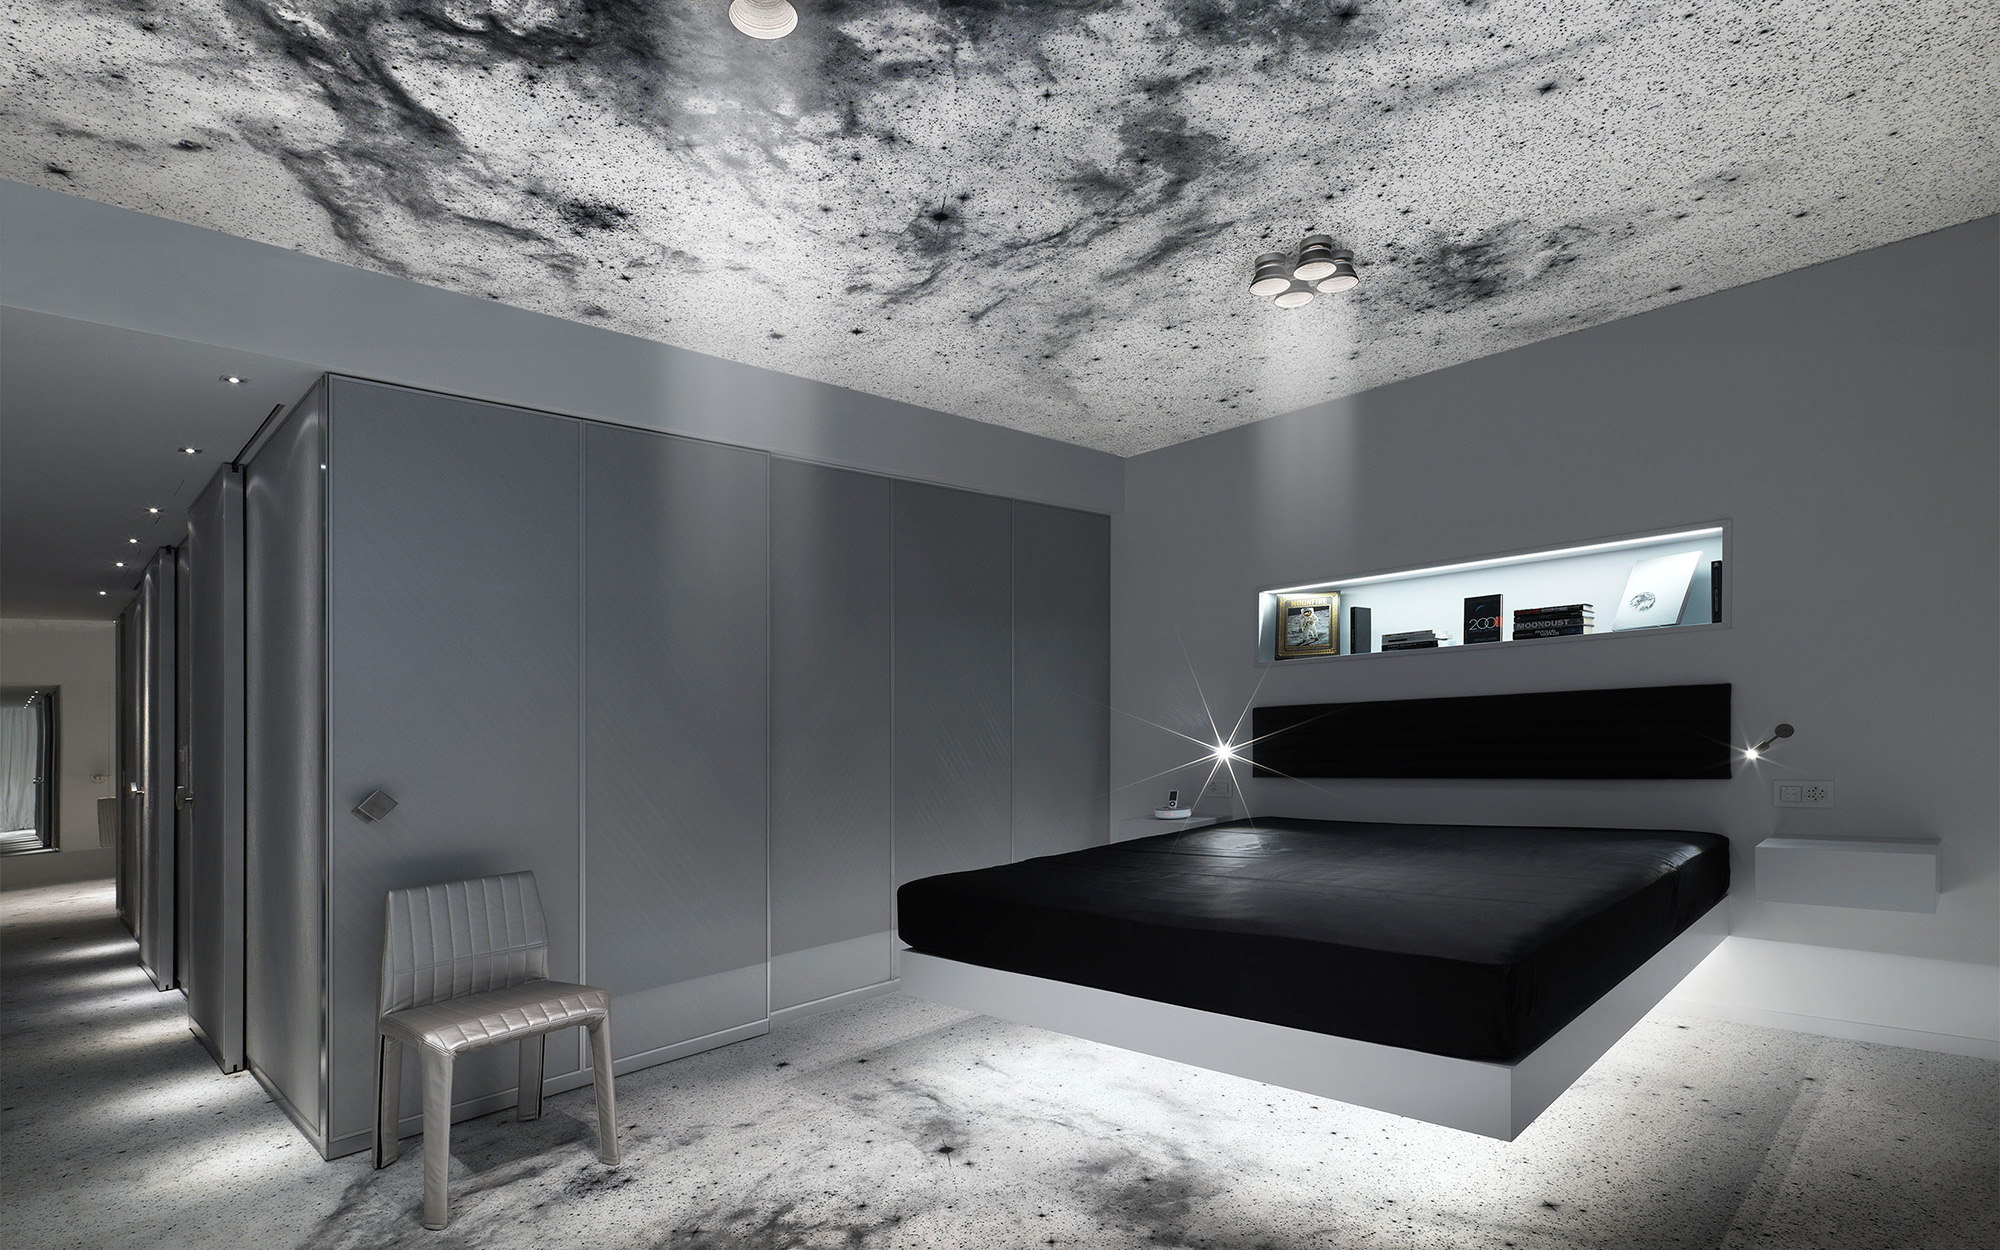 Seven Space-themed Hotels That Are Out of This World | Travel + ...